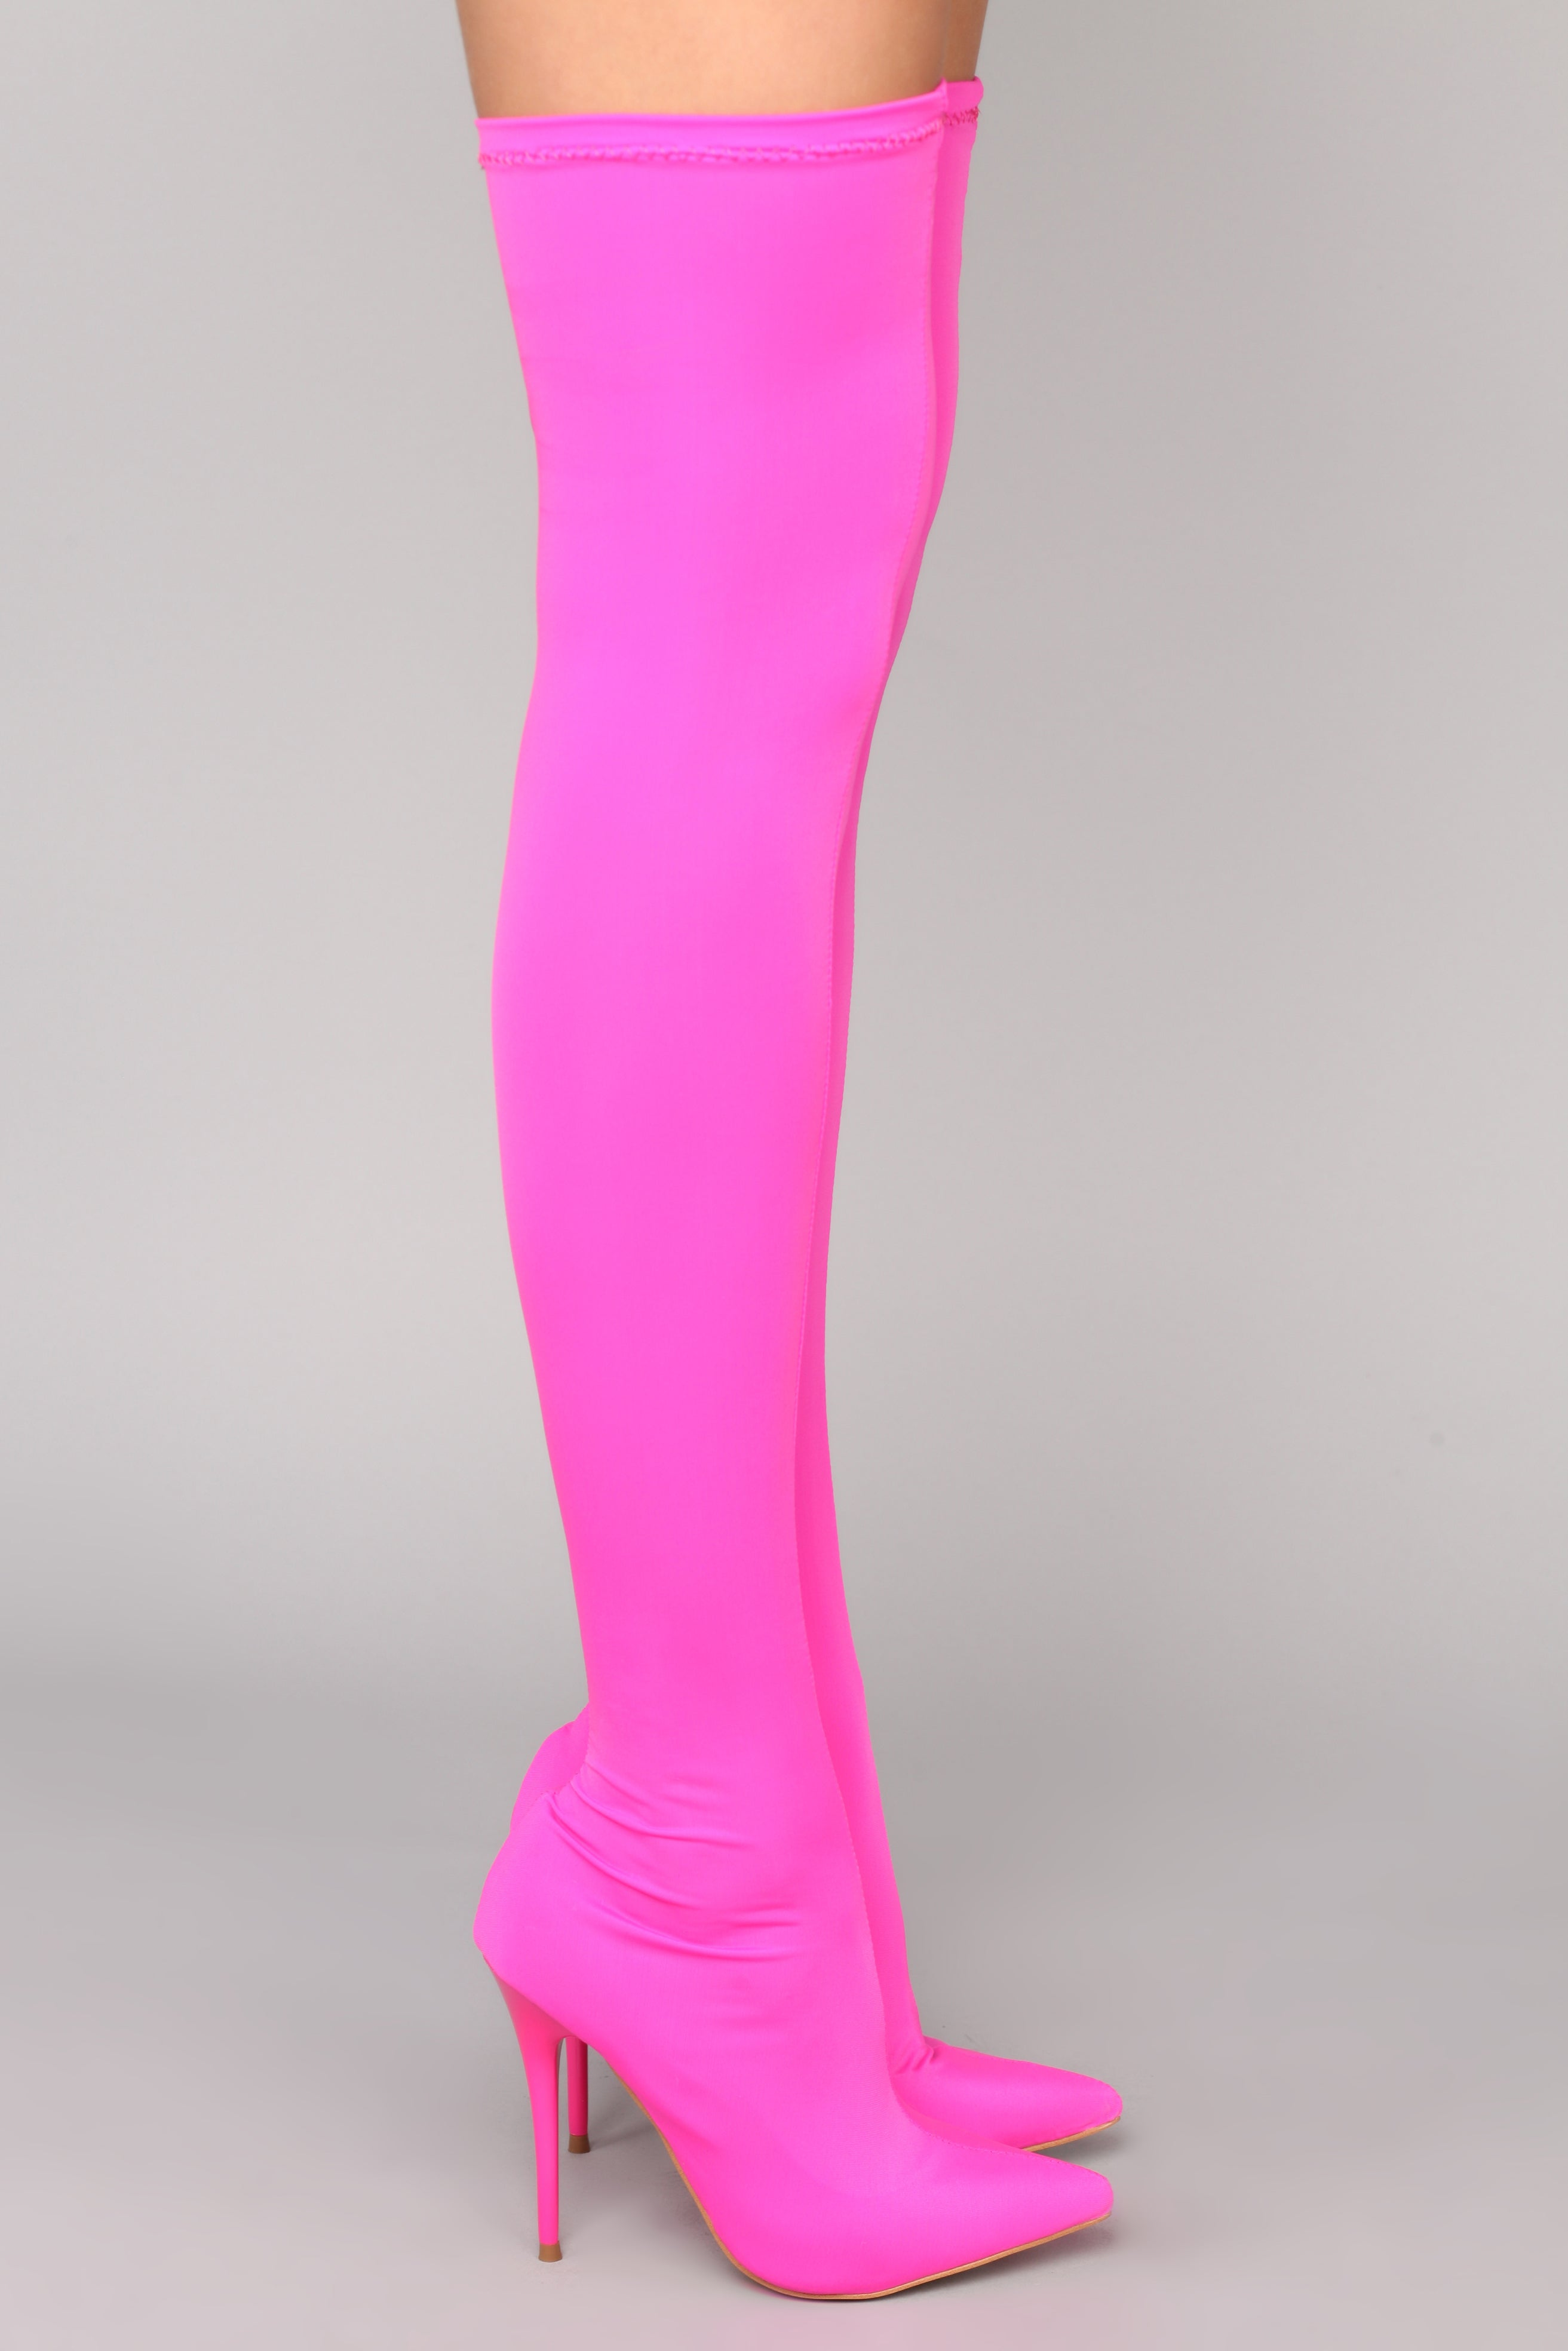 9cc8ebdc9f1 For A Little Fame Over The Knee Boot - Neon Pink